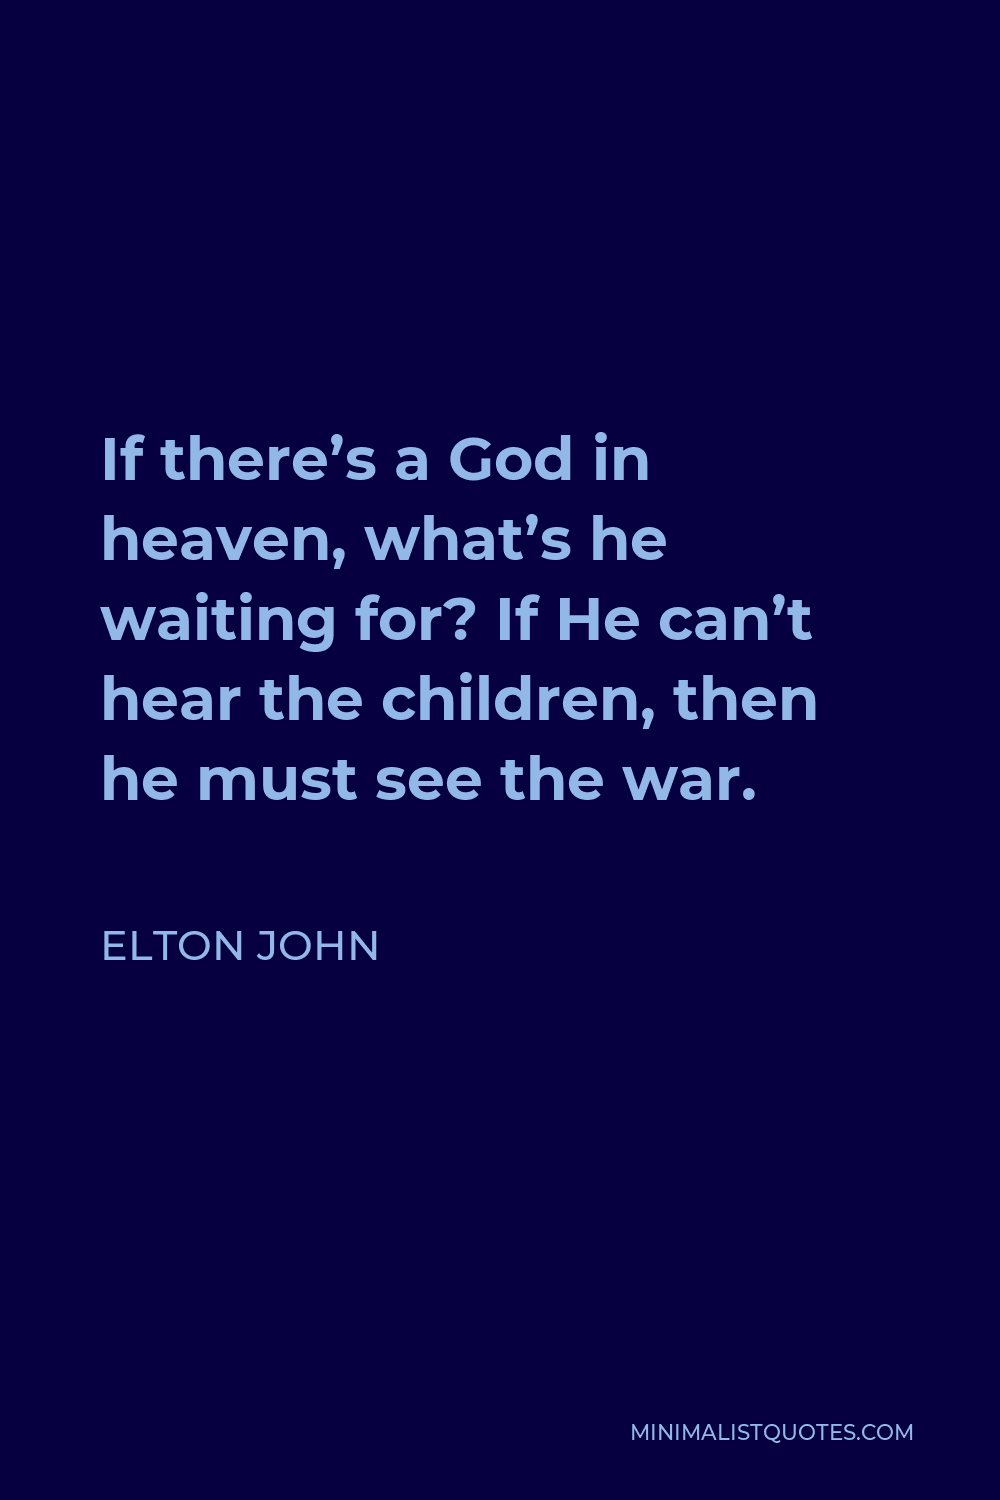 Elton John Quote - If there's a God in heaven, what's he waiting for? If He can't hear the children, then he must see the war.